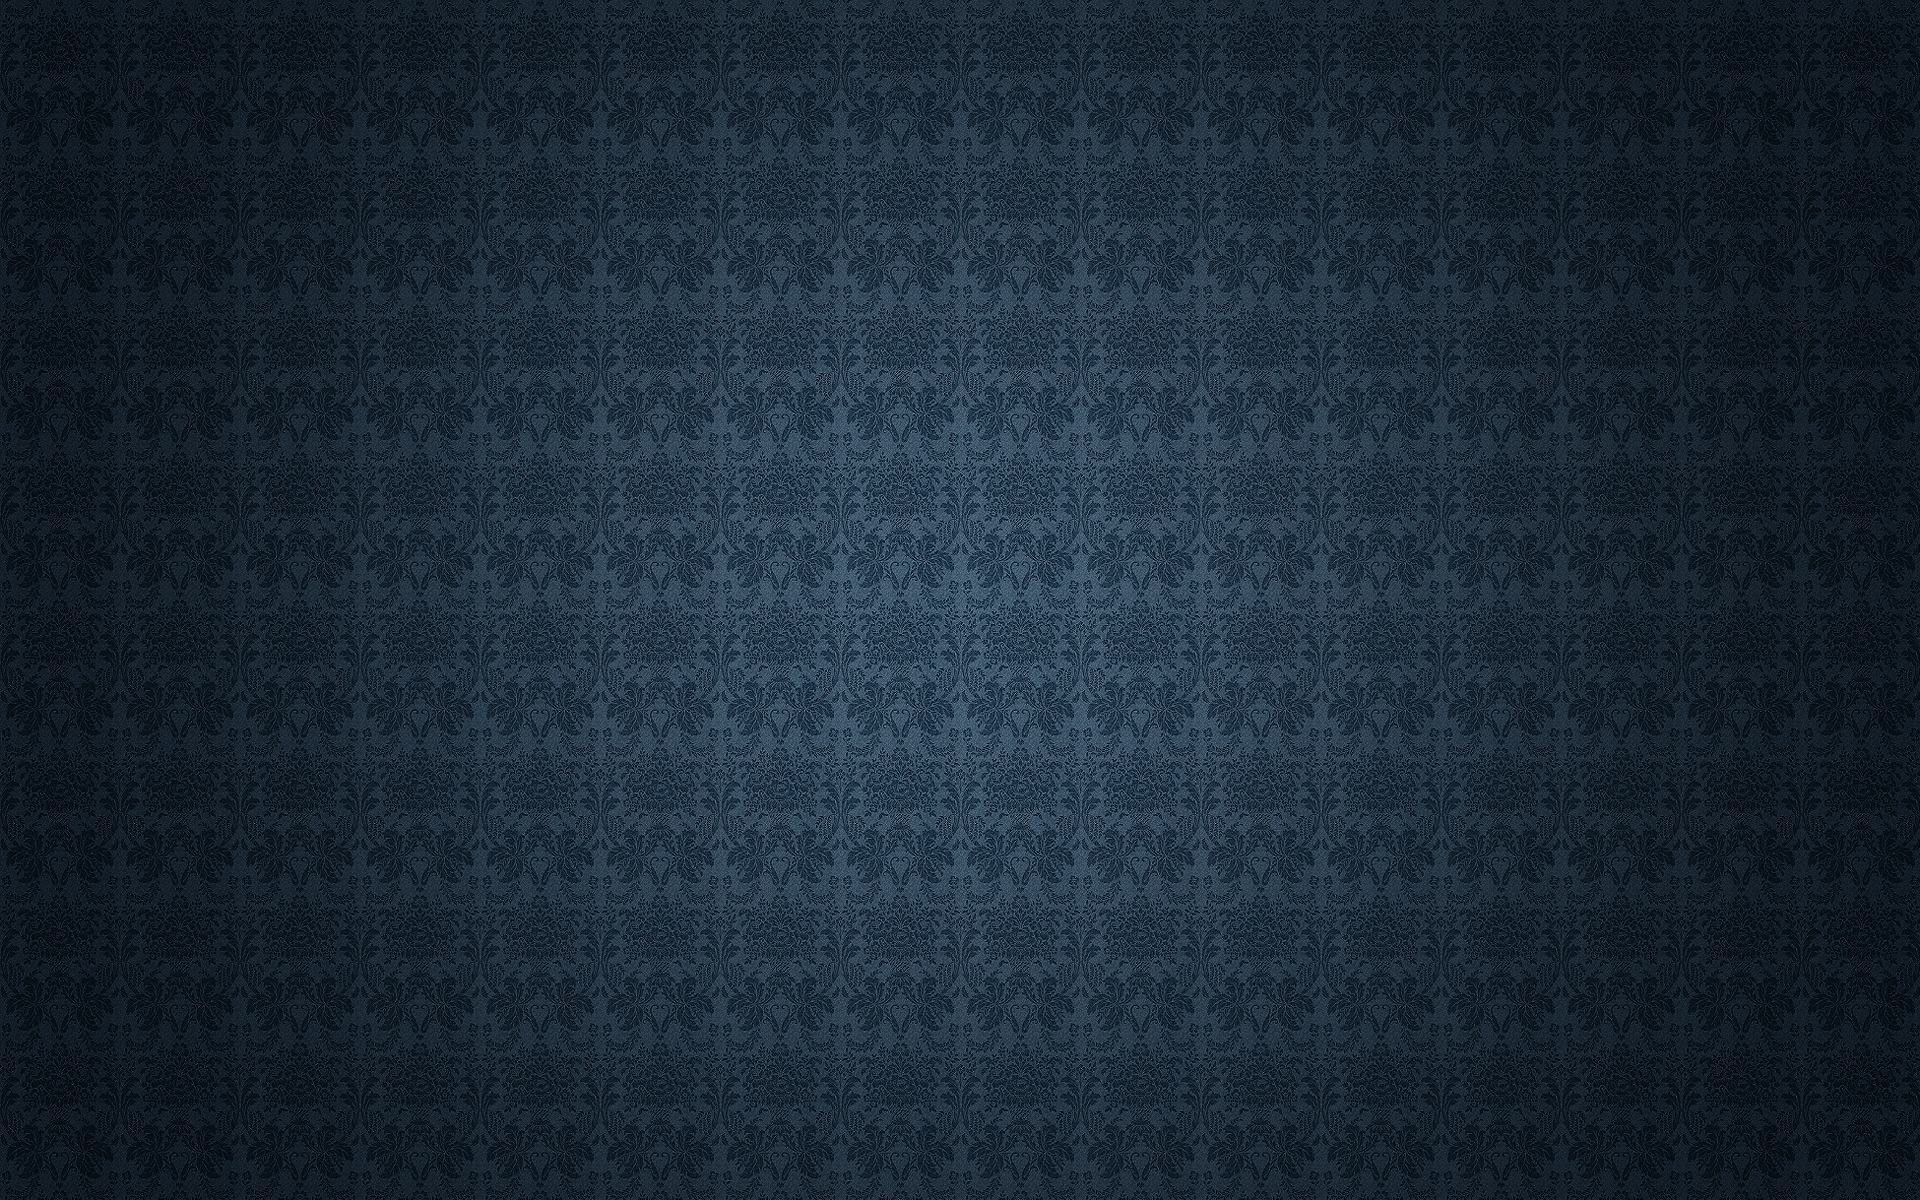 34 Textured Backgrounds 183 ① Download Free Awesome